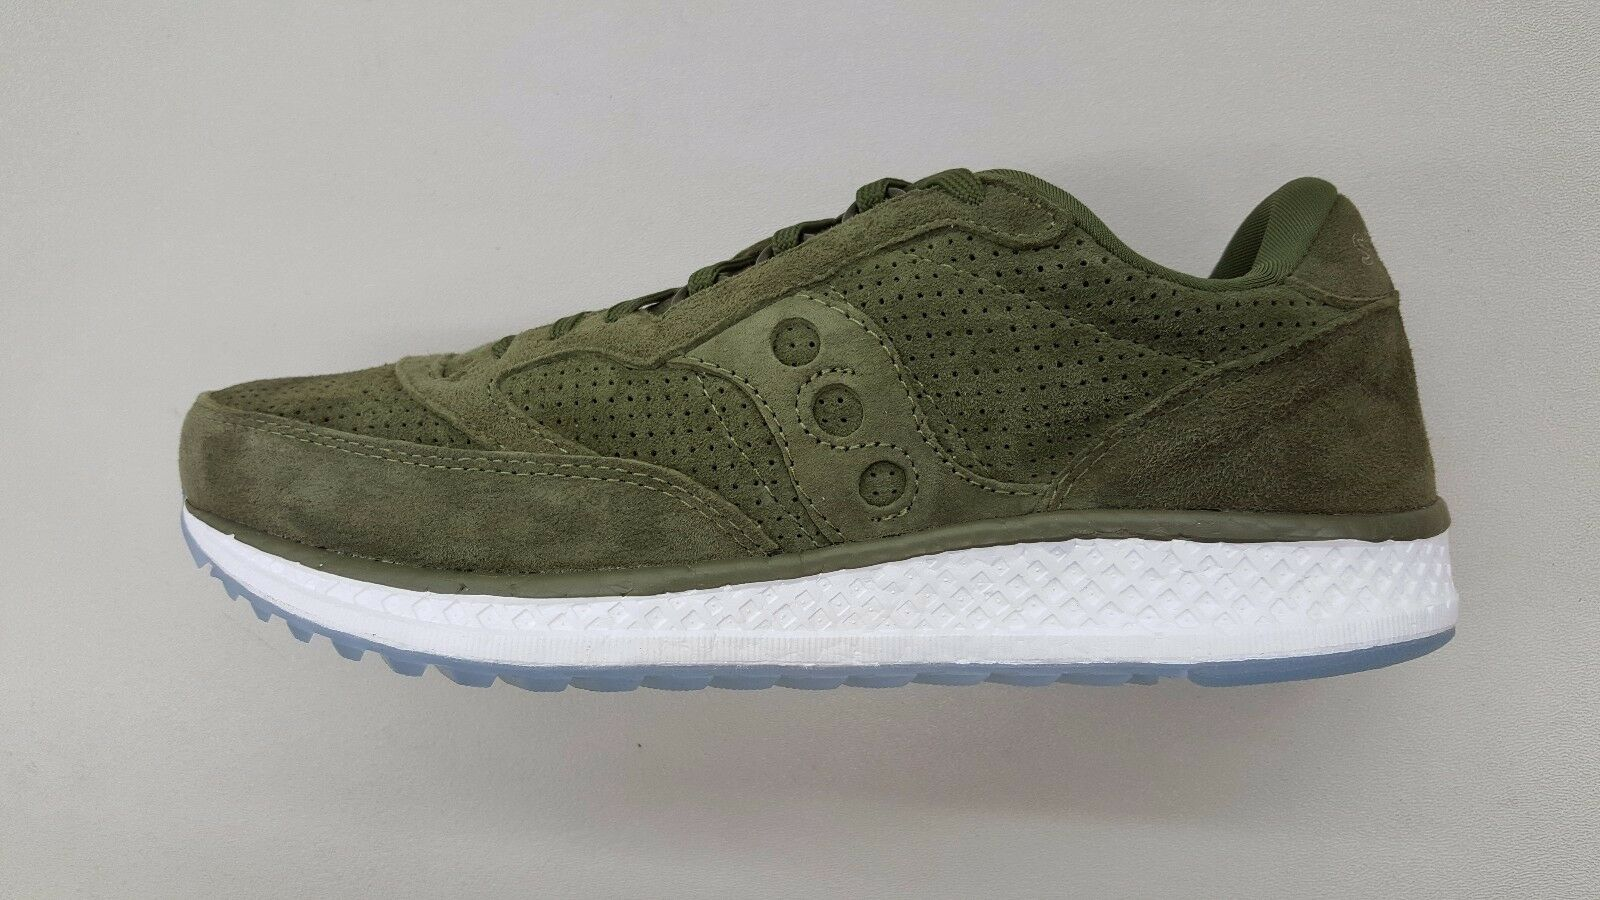 SAUCONY FREEDOM RUNNER SUEDE GREEN WHITE ICE SOLE Uomo SIZE SNEAKERS S40001-3